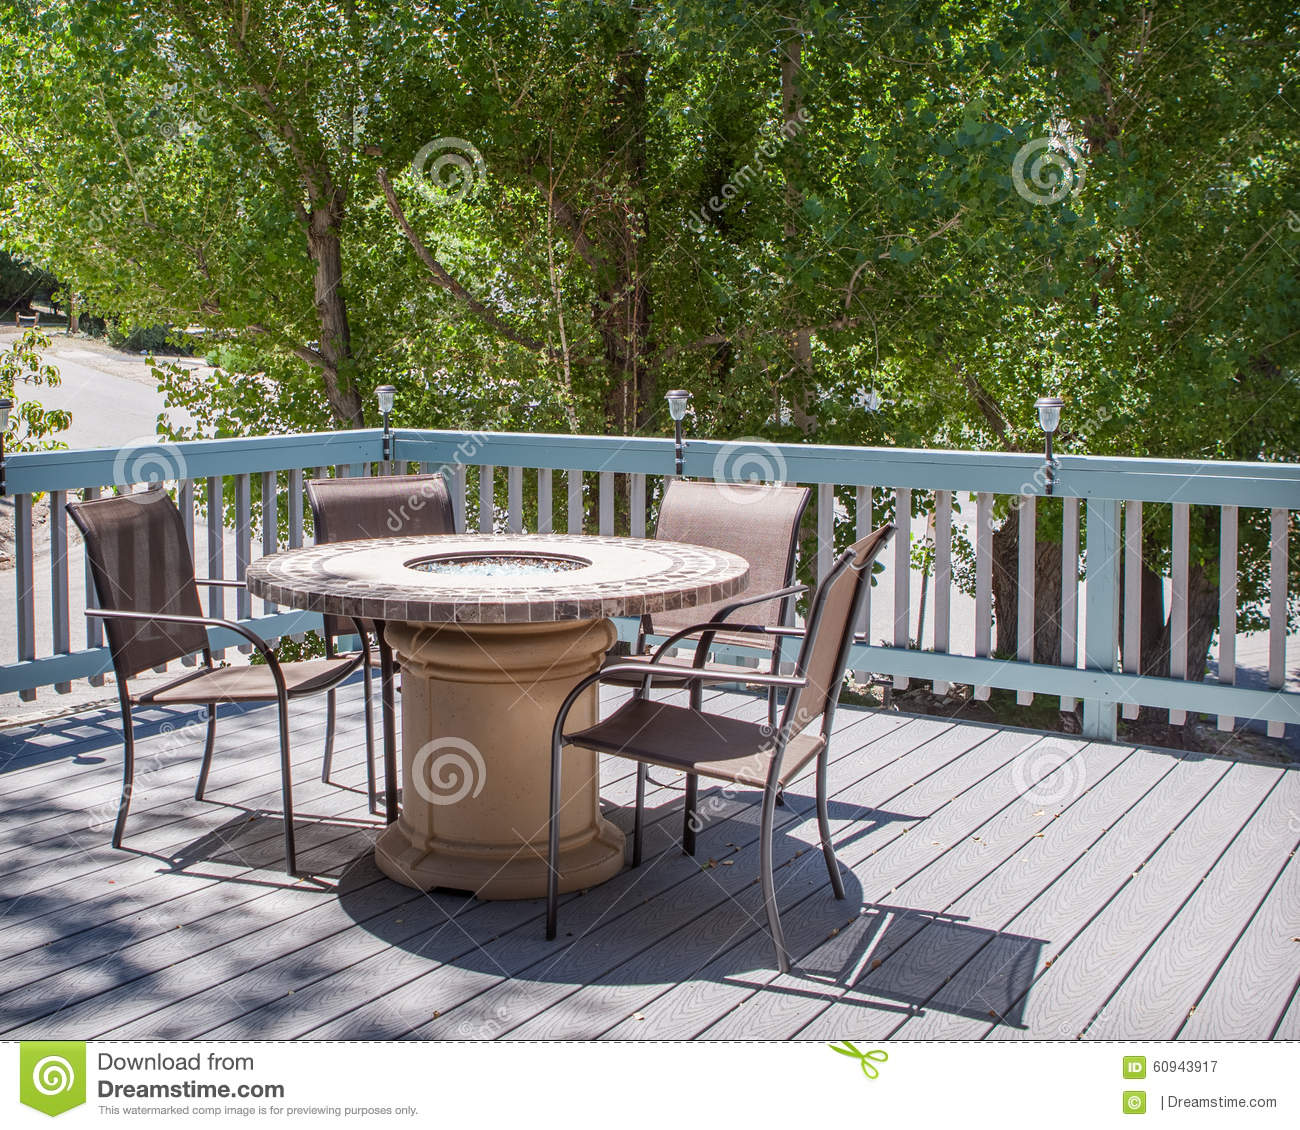 Patio Table With Fire Pit And Chairs On Deck